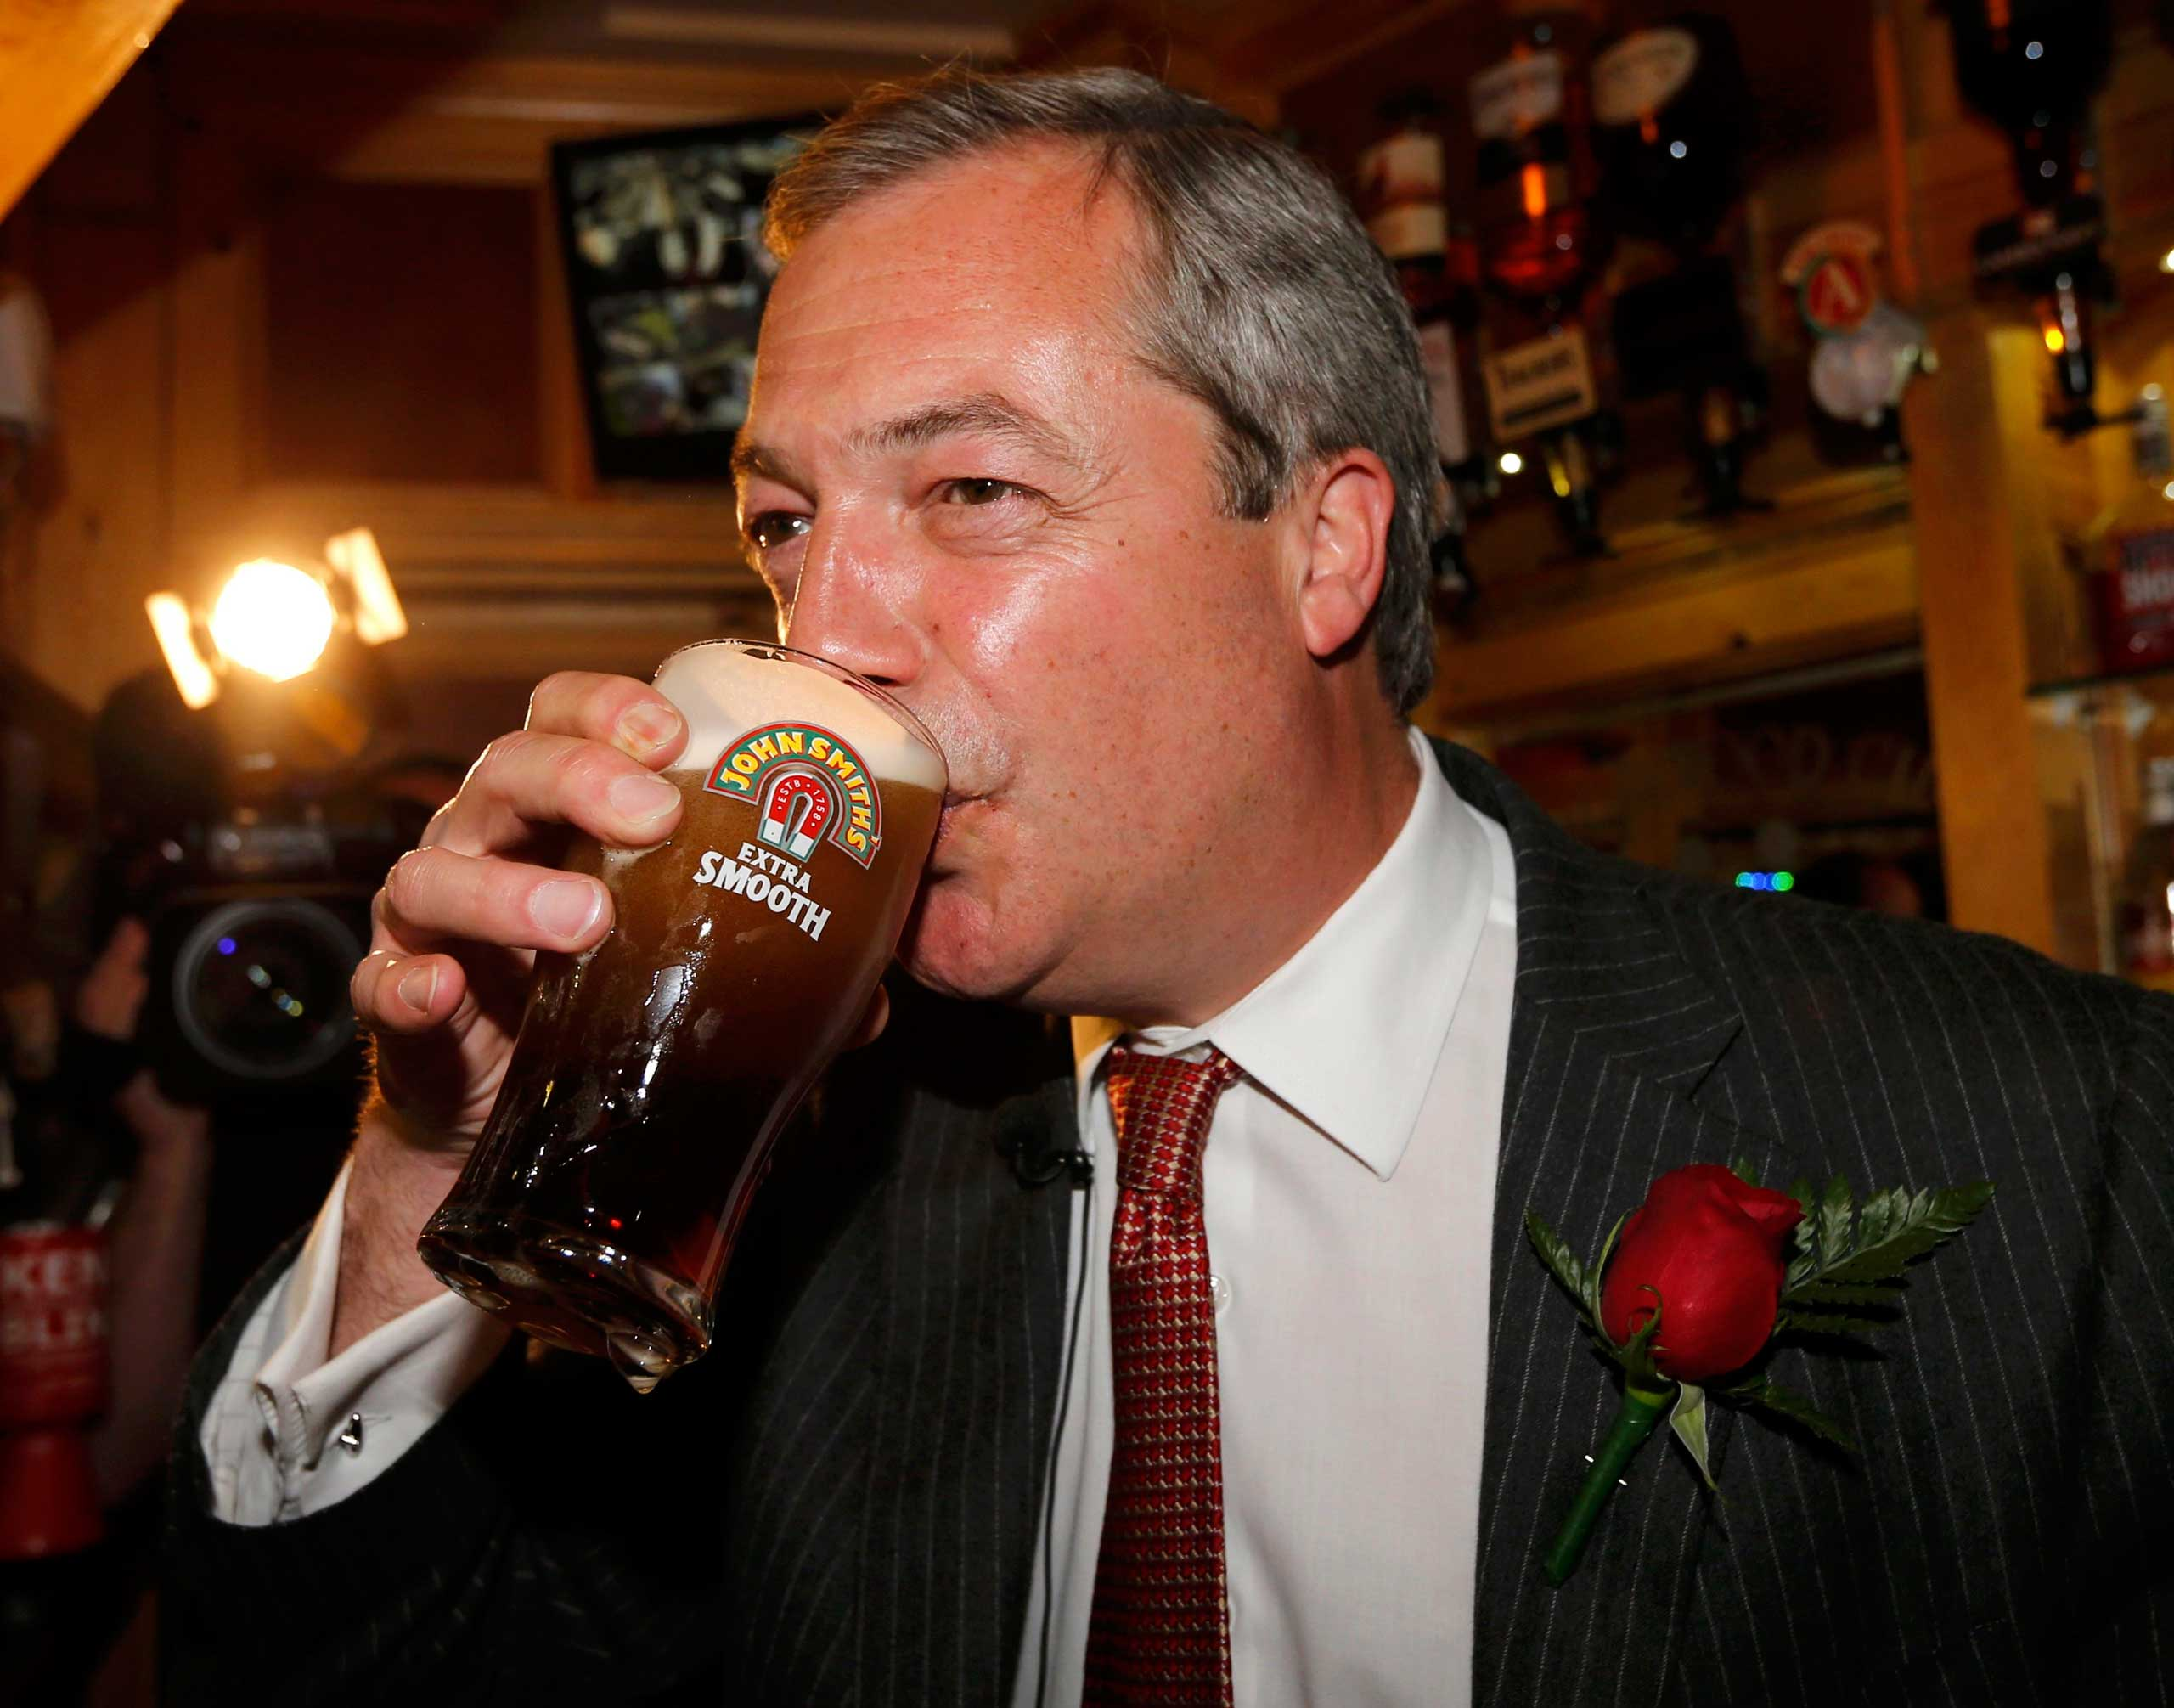 Nigel Farage enjoys a pint of beer during a visit to mark St George's day at the Northwood Club in Ramsgate, southern England on April 23, 2015.